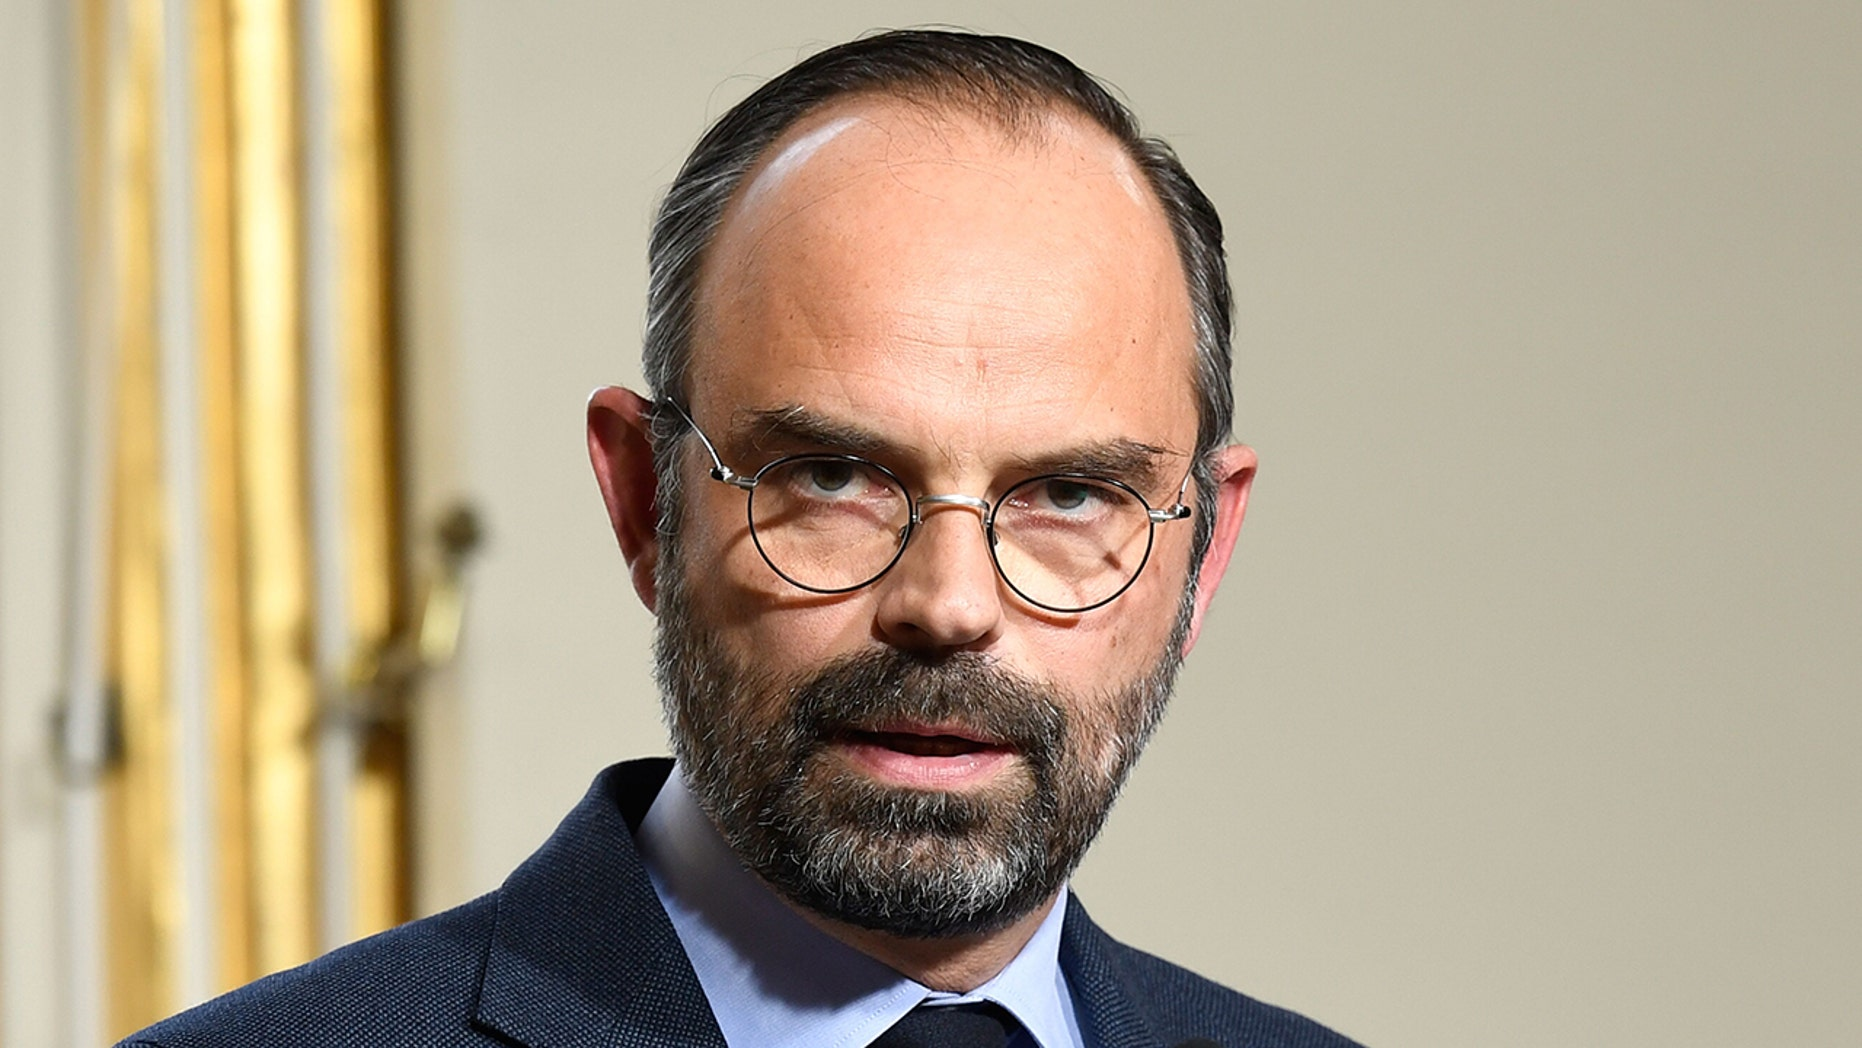 French Prime Minister Edouard Philippe (L) gives a press conference, on March 18, 2019 at the Matignon hotel in Paris, to announce measures after weekend riots. (Photo by Bertrand GUAY / AFP) (Photo credit should read BERTRAND GUAY/AFP/Getty Images)